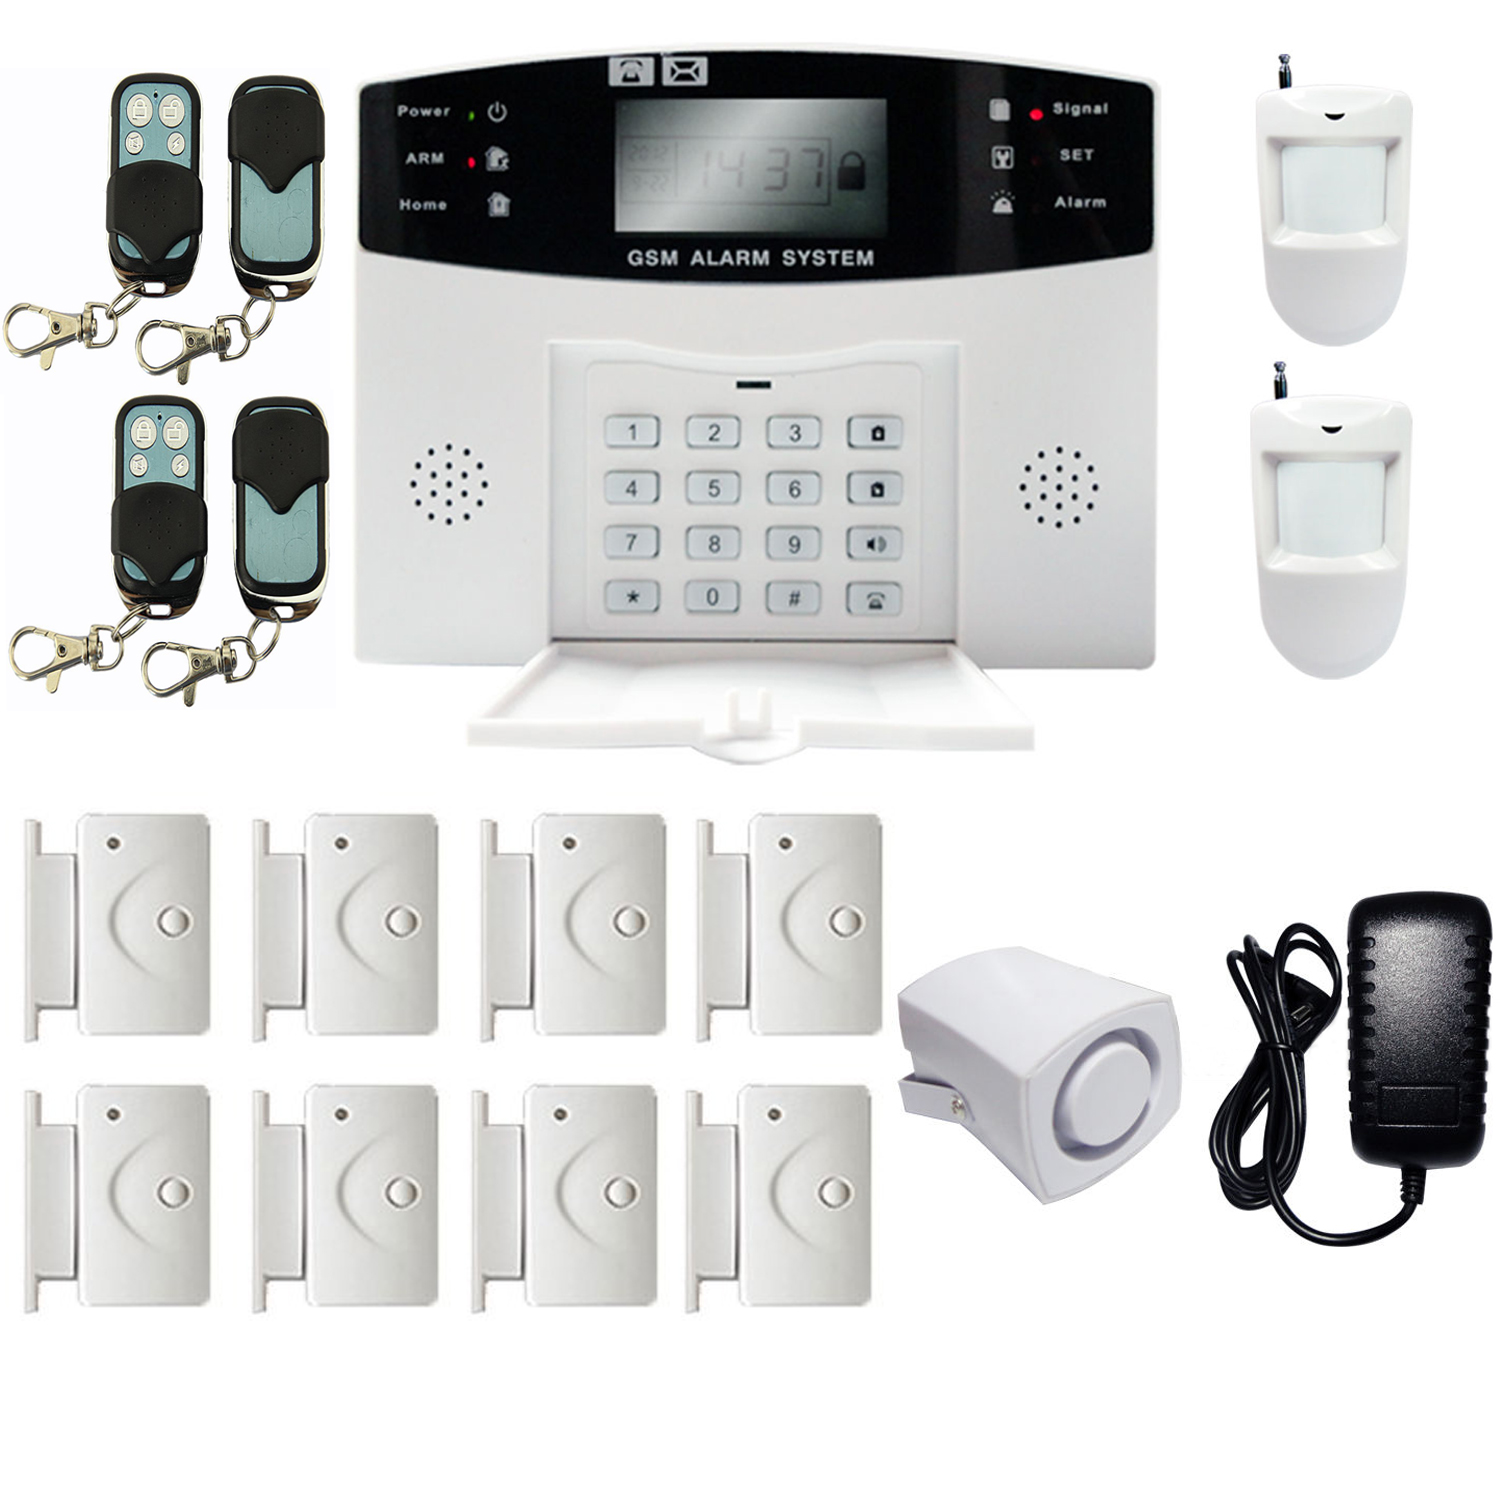 iMeshbean GSM Wireless & Wired Home Security Alarm Burglar Alarm System 108 Zones Auto Dialing DIY KIT